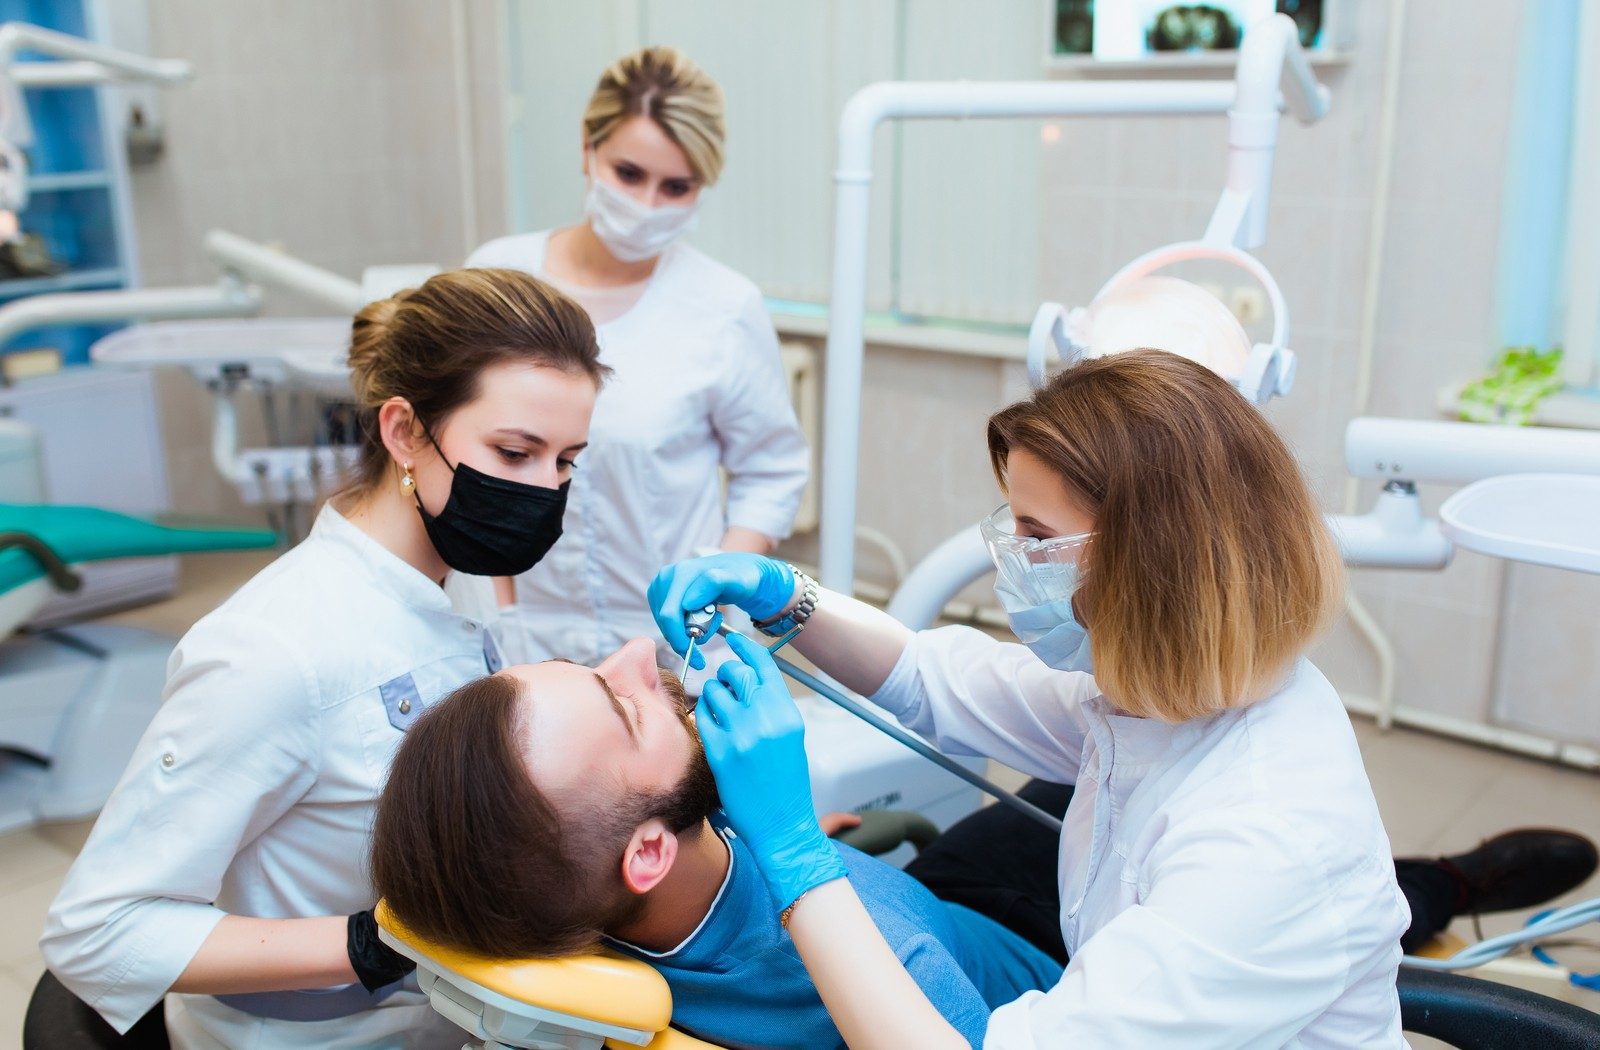 Dental specialist and 2 assistants working in a man's mouth while he is in a dental chair laying down